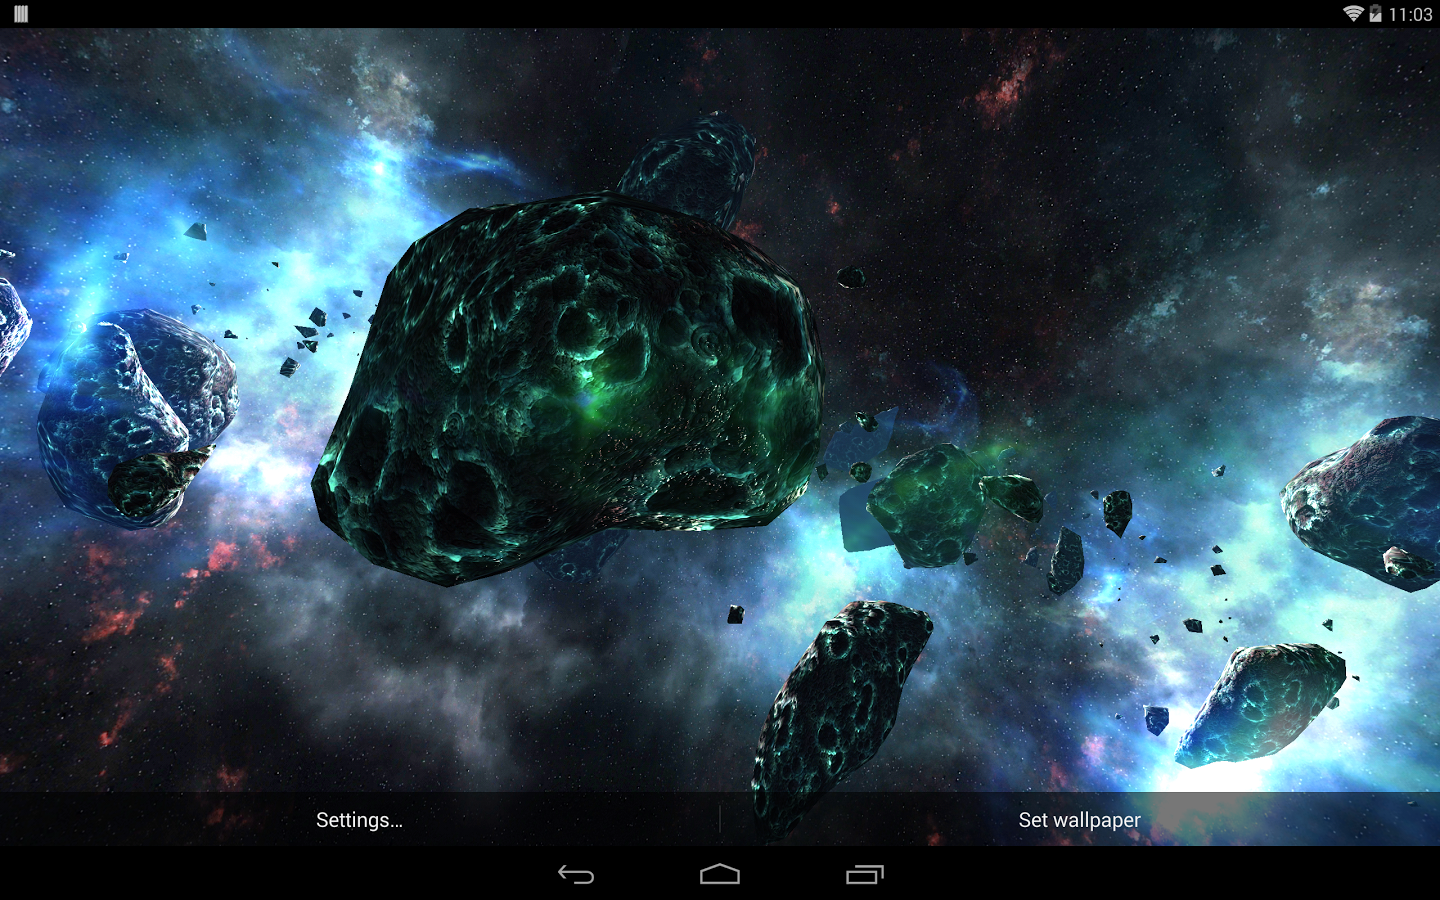 ASTEROIDS PACK 3D Android 1440x900